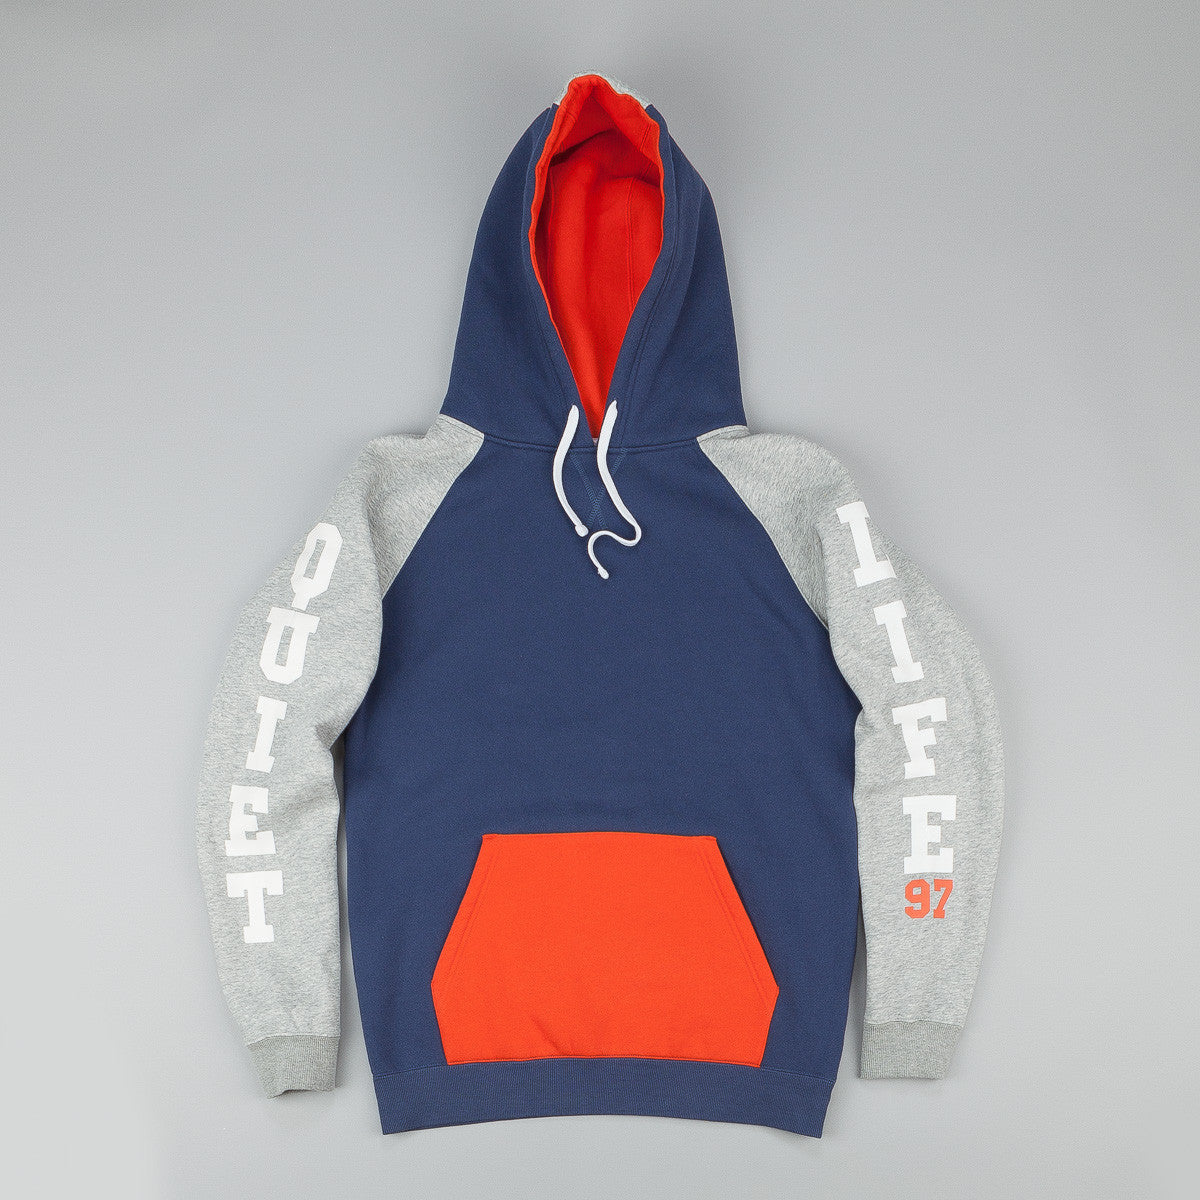 The Quiet Life Climber Hooded Sweatshirt - Navy / Orange / Heather